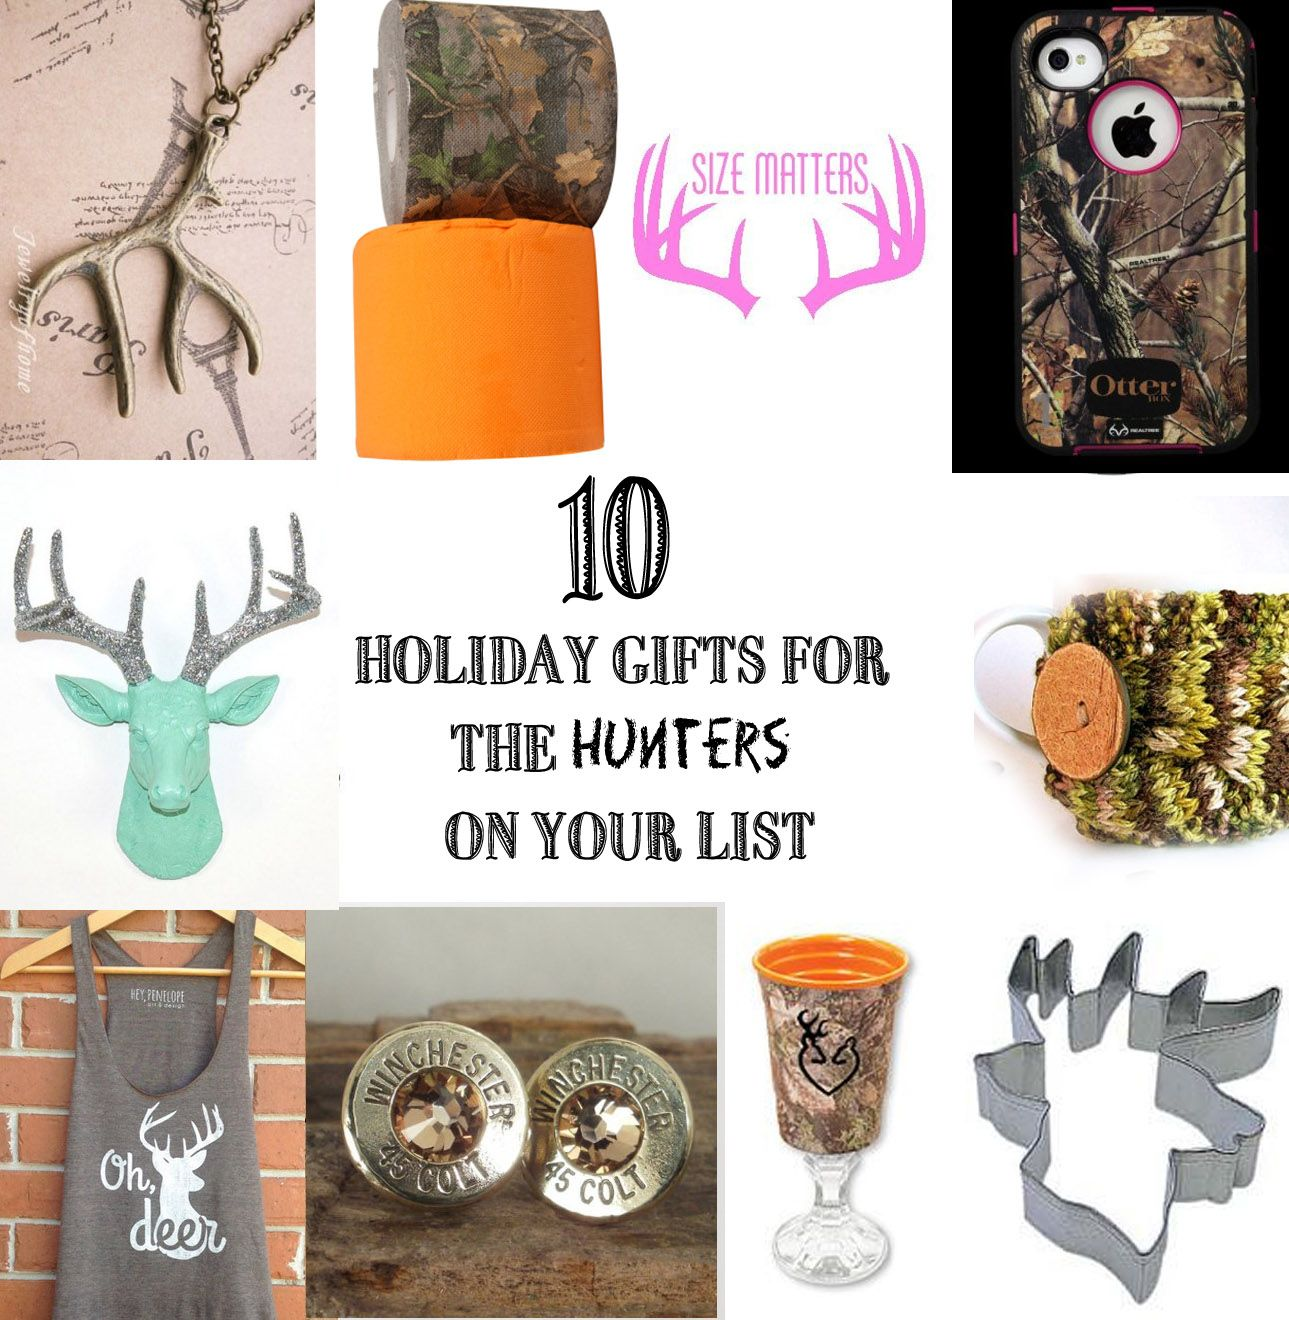 gift ideas for hunters under $20